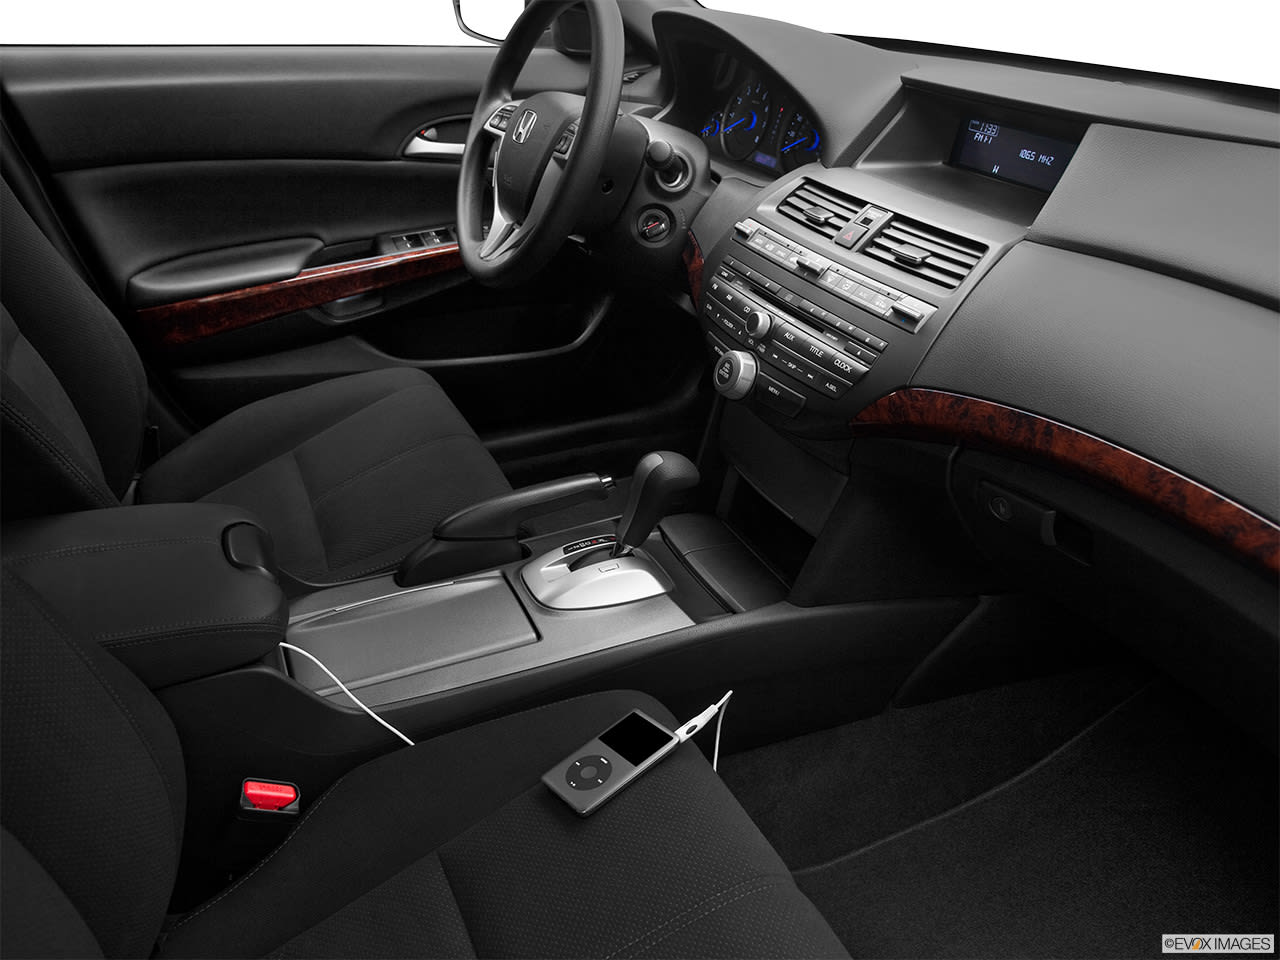 Honda Crosstour 2012 interior